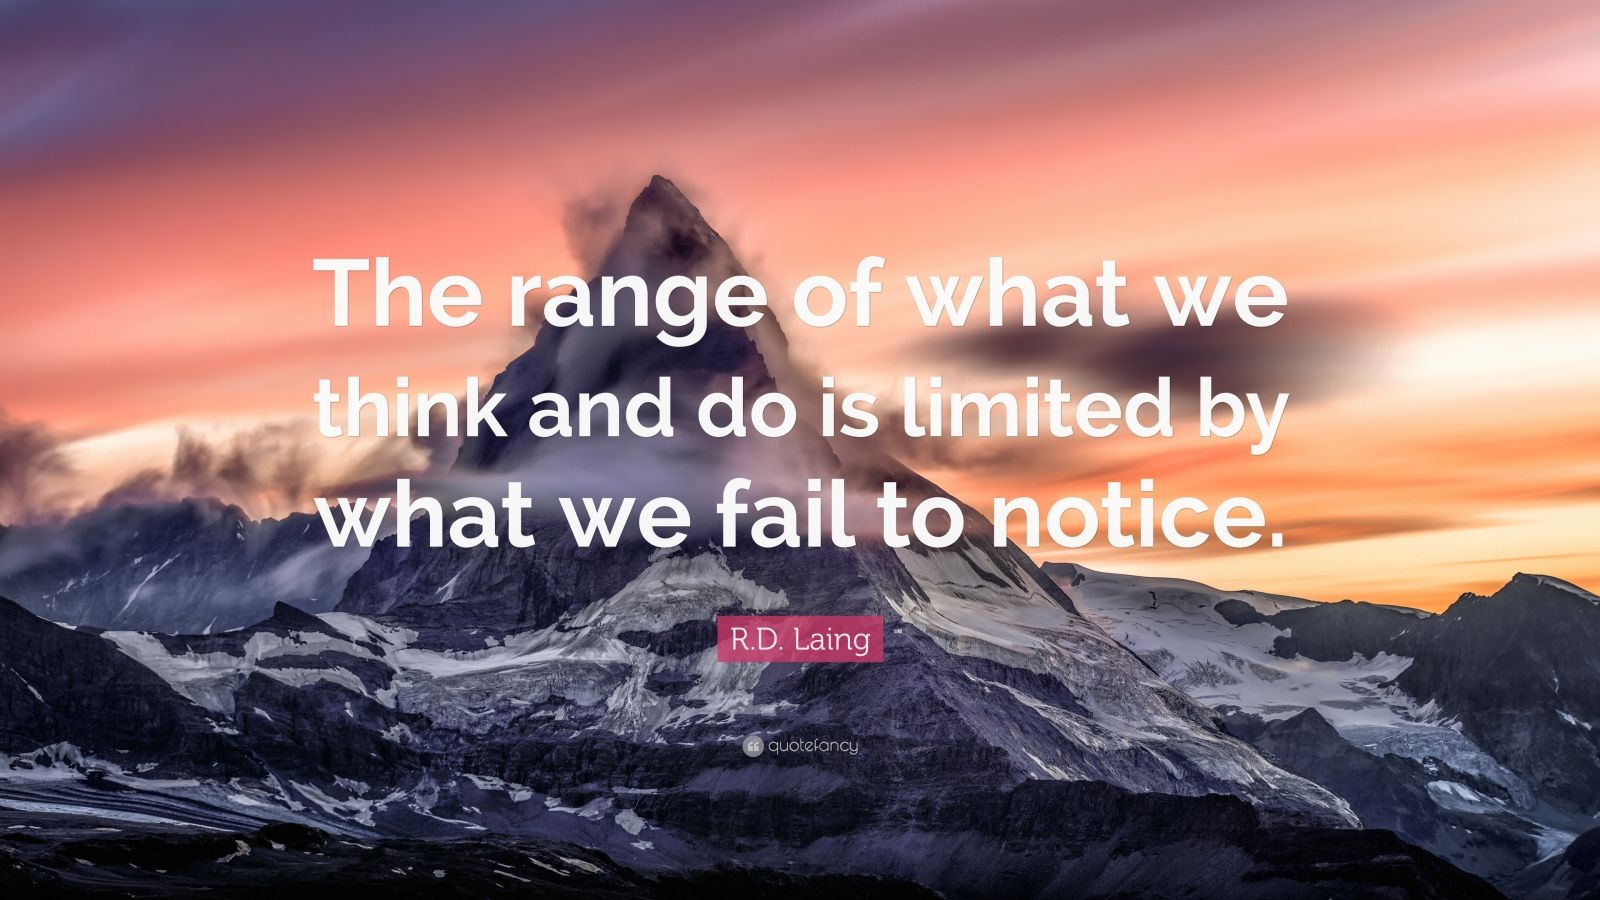 Steve Jobs Quotes Your Time Is Limited Wallpaper R D Laing Quote The Range Of What We Think And Do Is